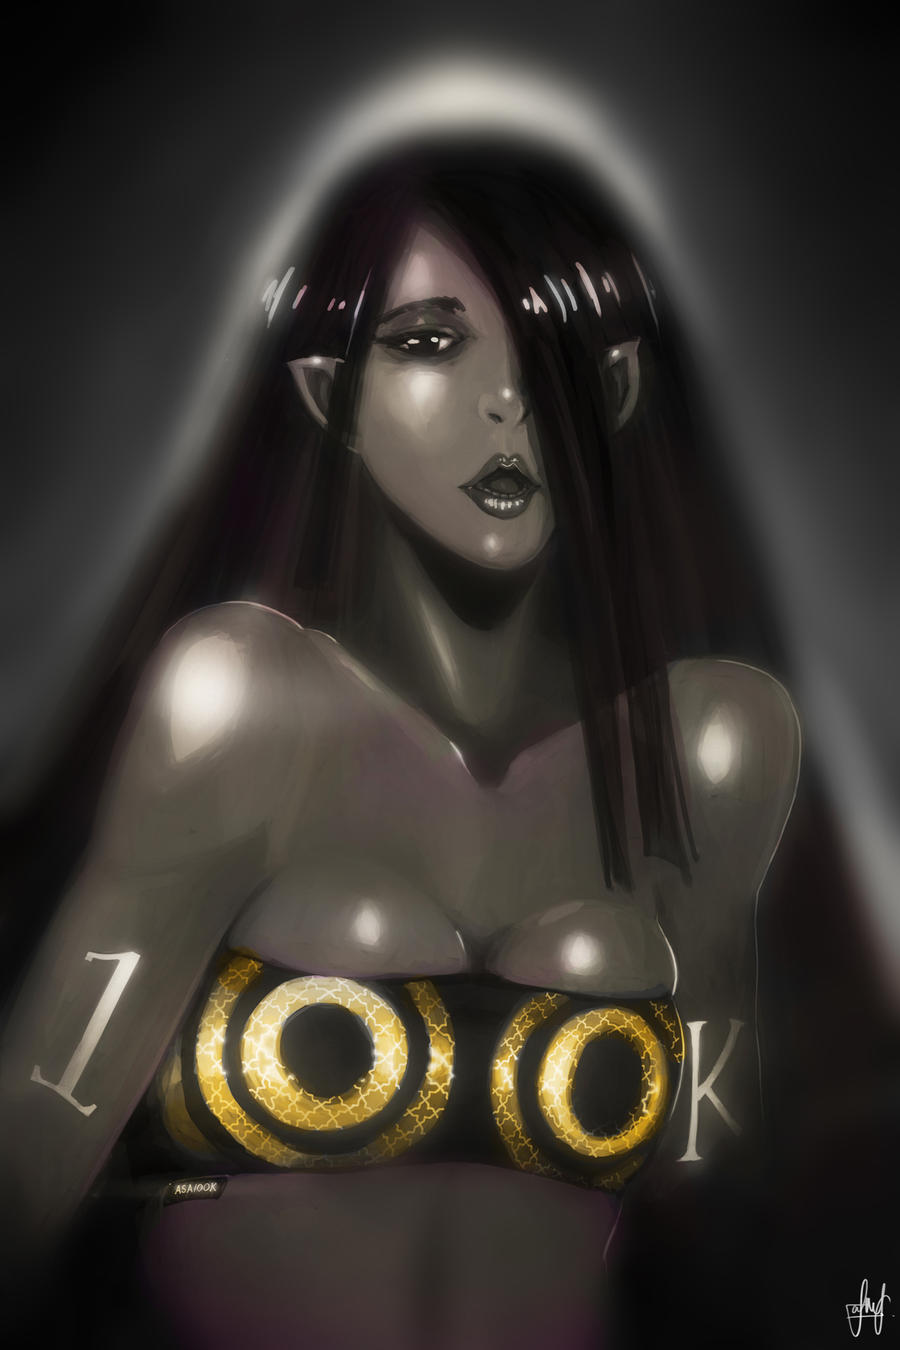 ASA 100K: The sexy elf by Shiro169